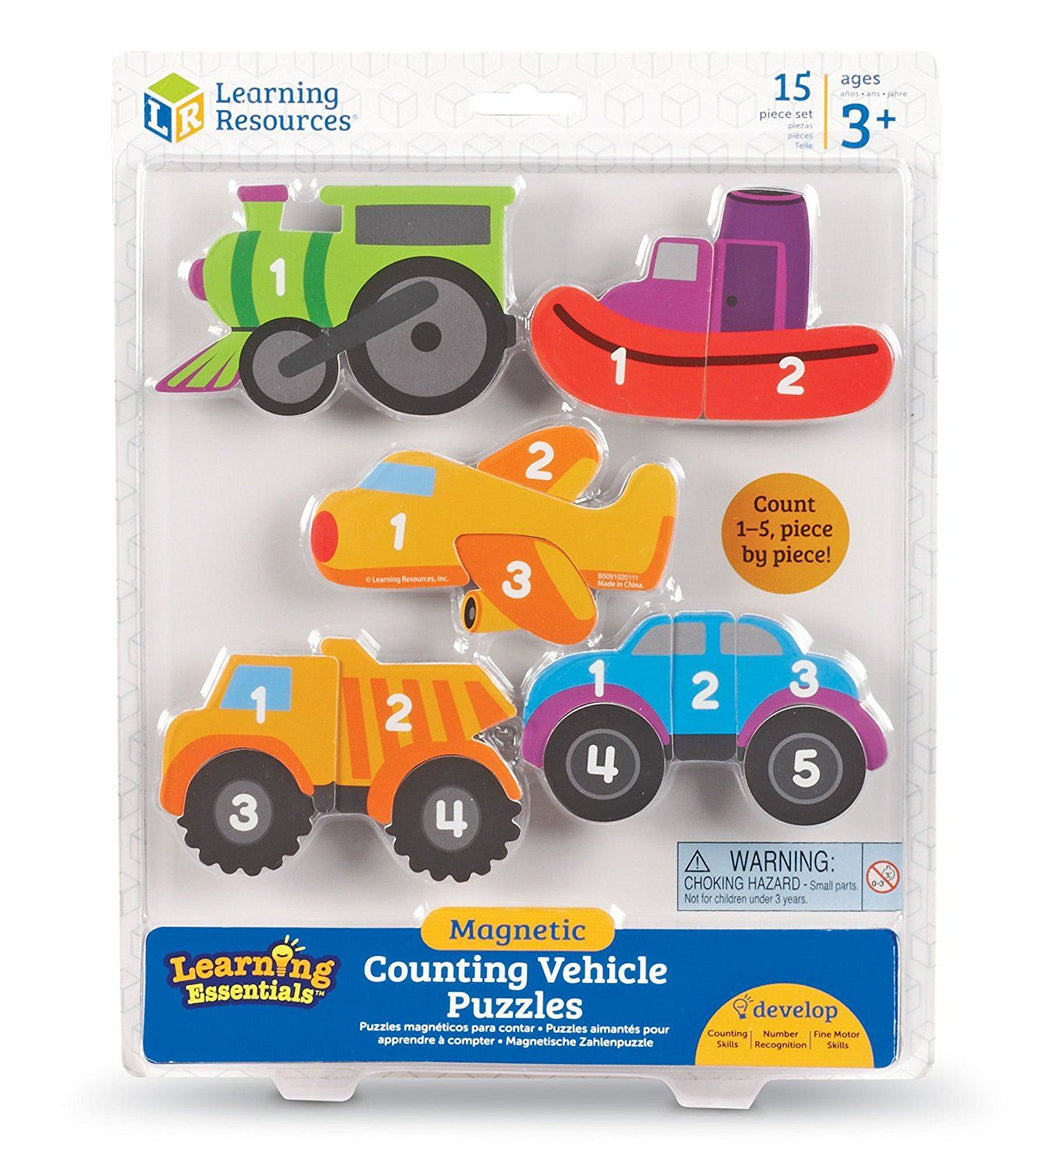 Magnetic Counter Vehicle Puzzles